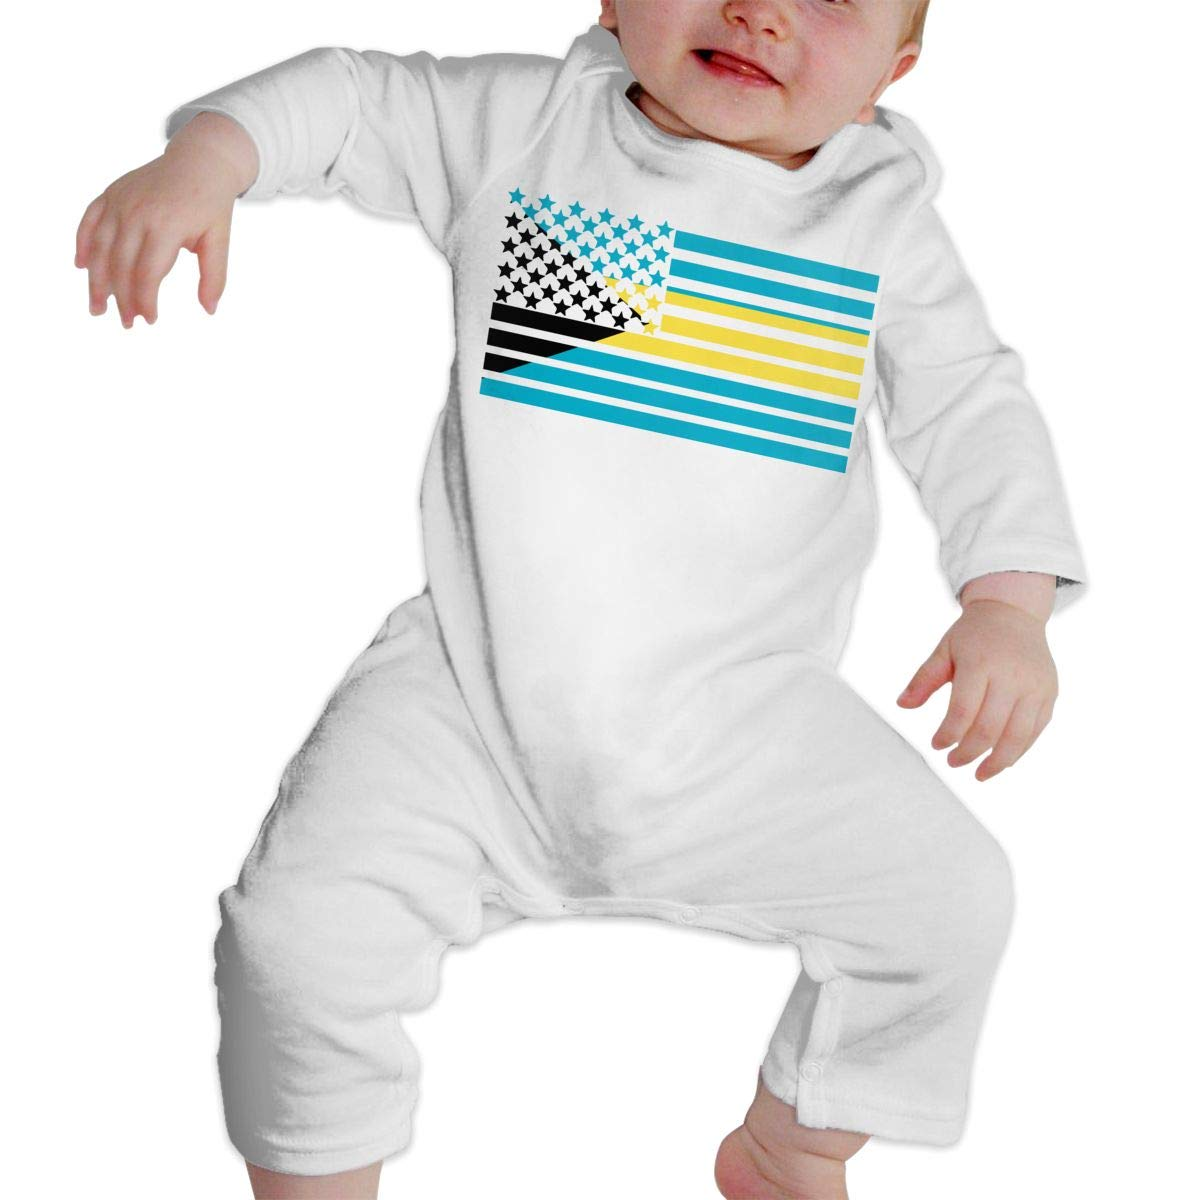 A1BY-5US Newborn Baby Boys Girls Cotton Long Sleeve American Bahamas Flag Baby Clothes One-Piece Romper Clothes